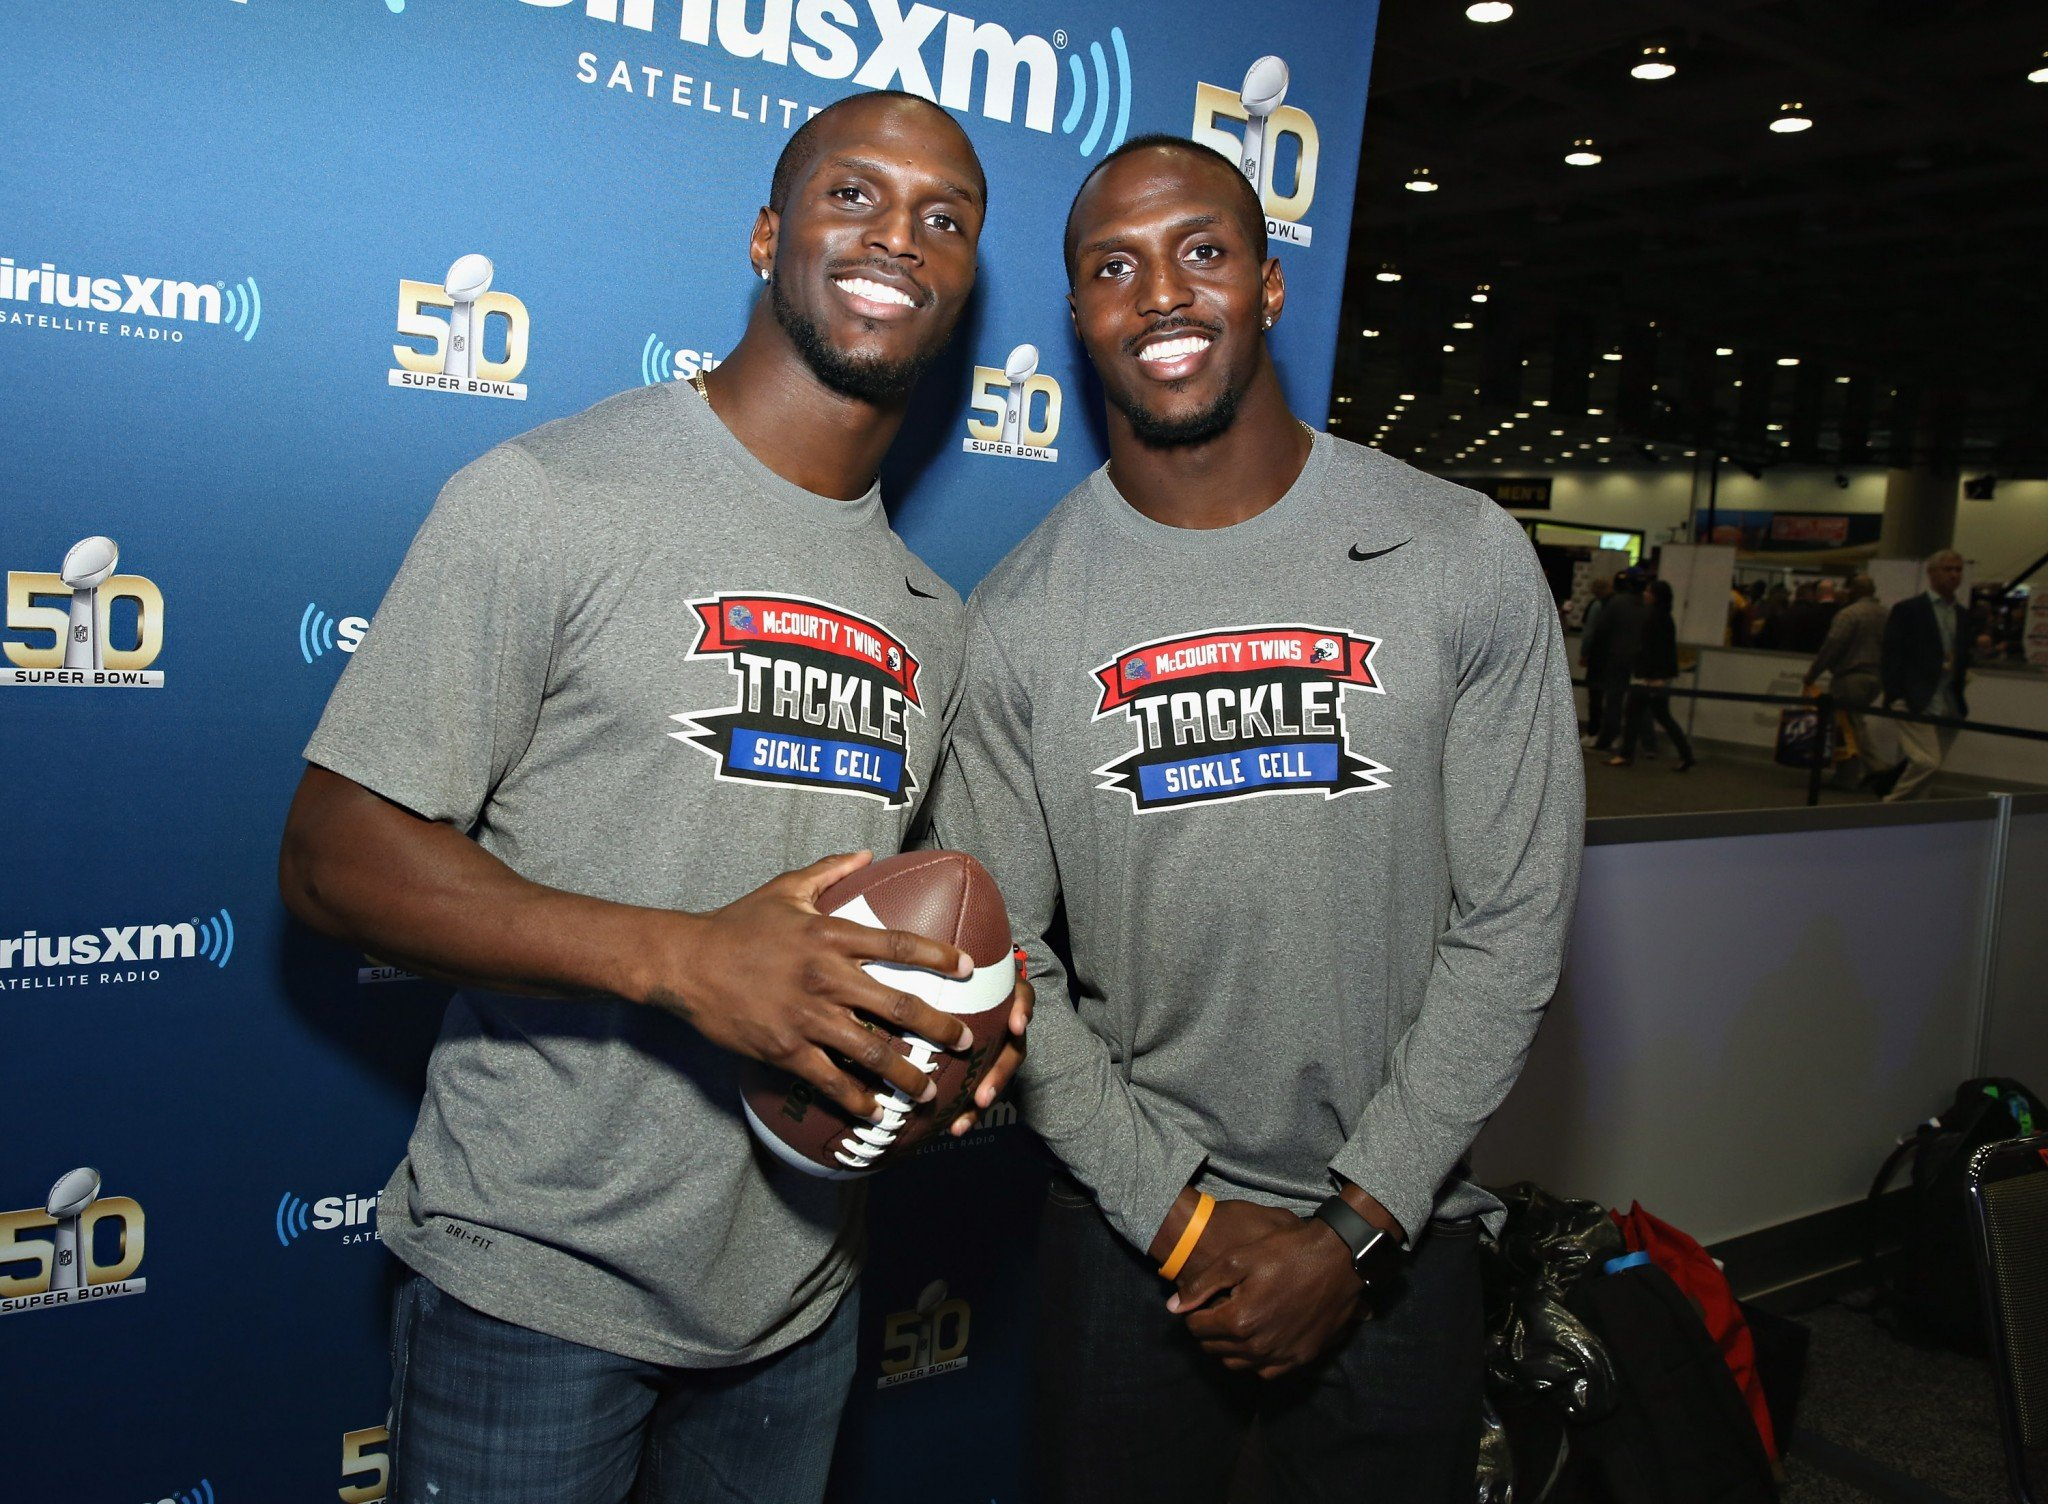 Jason, left, and Devin McCourty will promote their Tackle Sickle Cell foundation. (Getty Images)